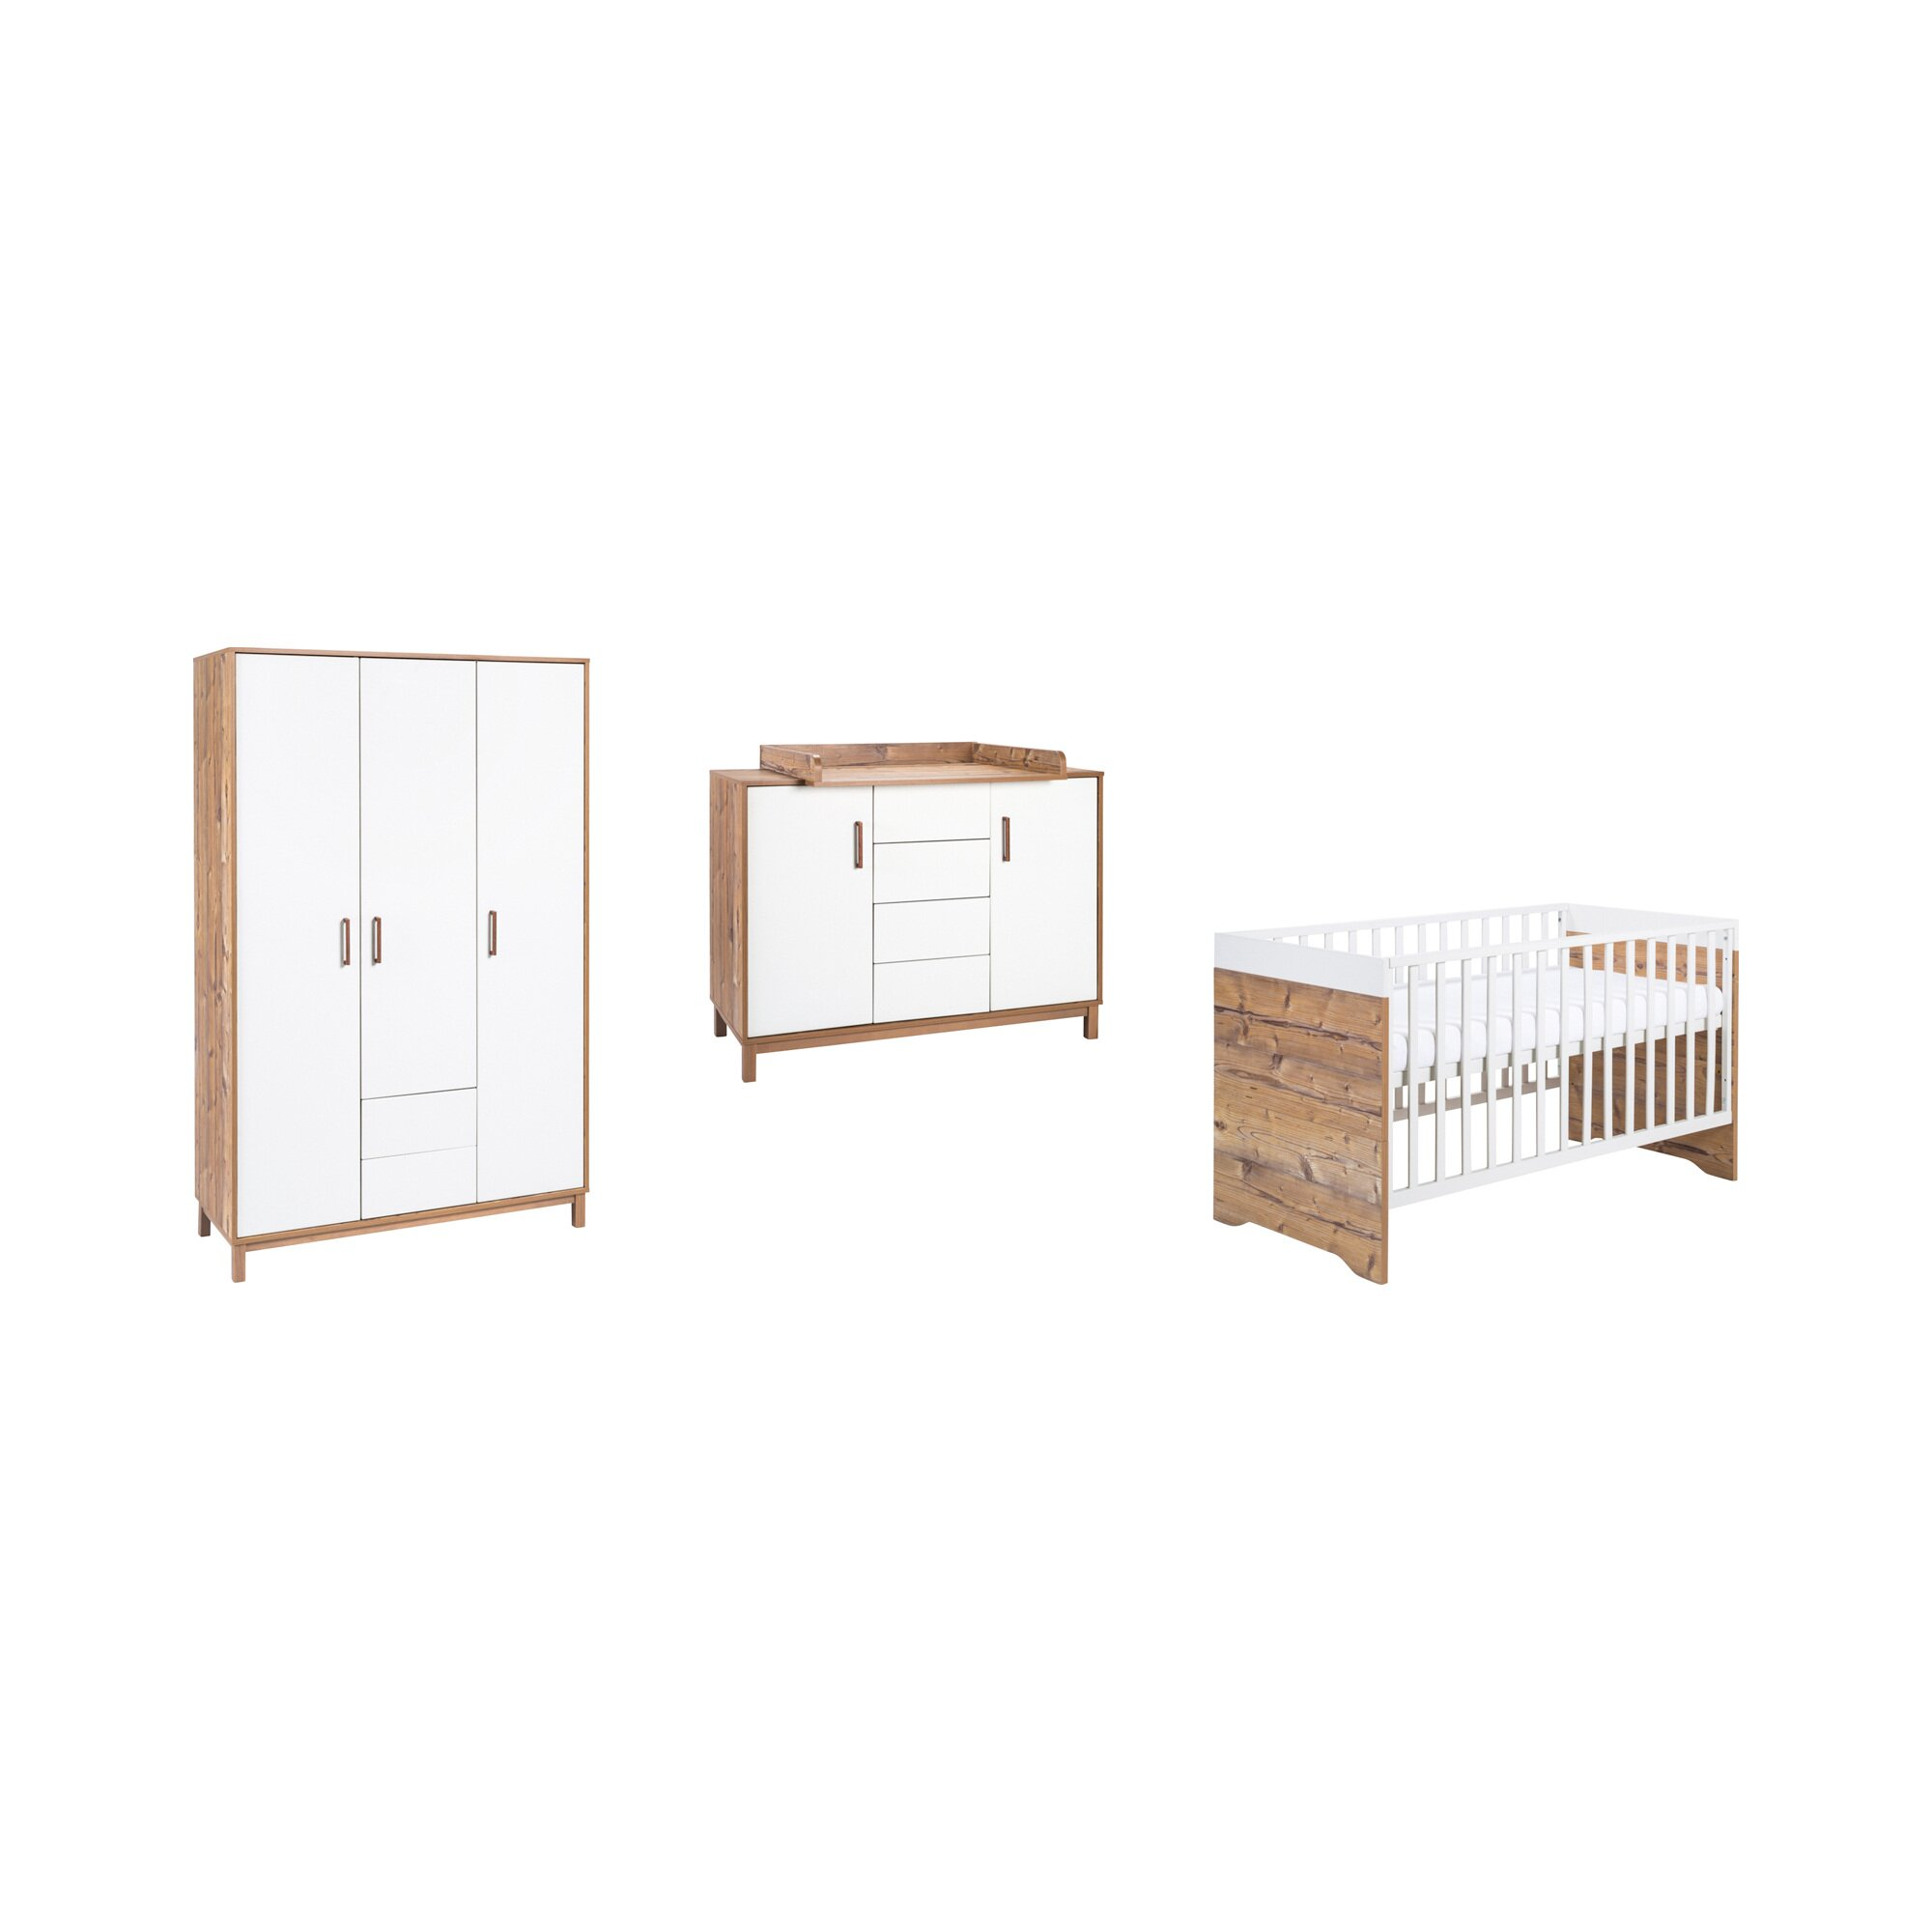 schardt-3-tlg-babyzimmer-timber